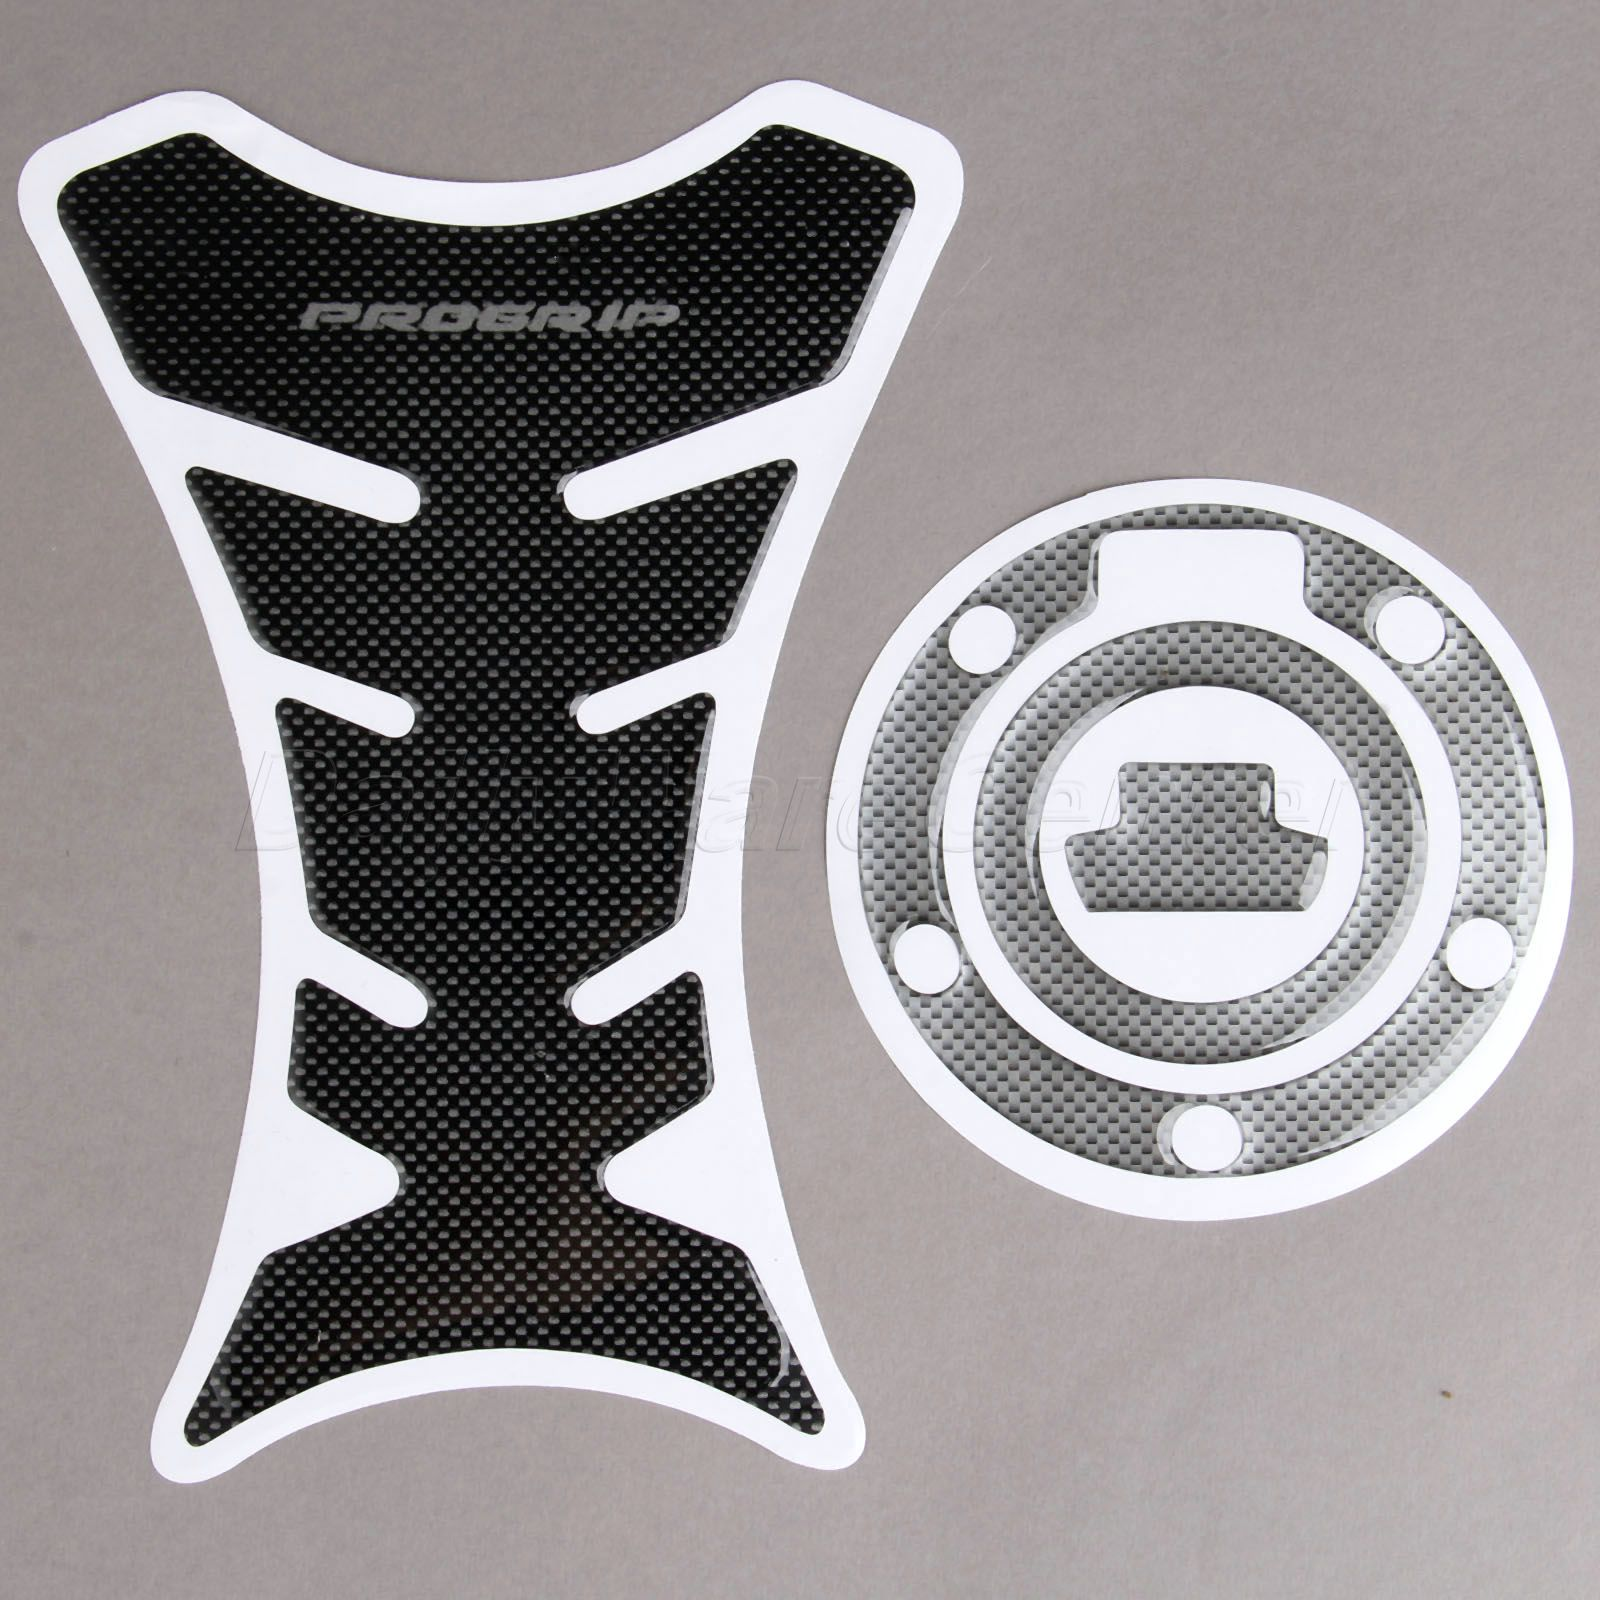 Carbon fiber motorcycle decoration decals fuel tank pad for Sticker deco